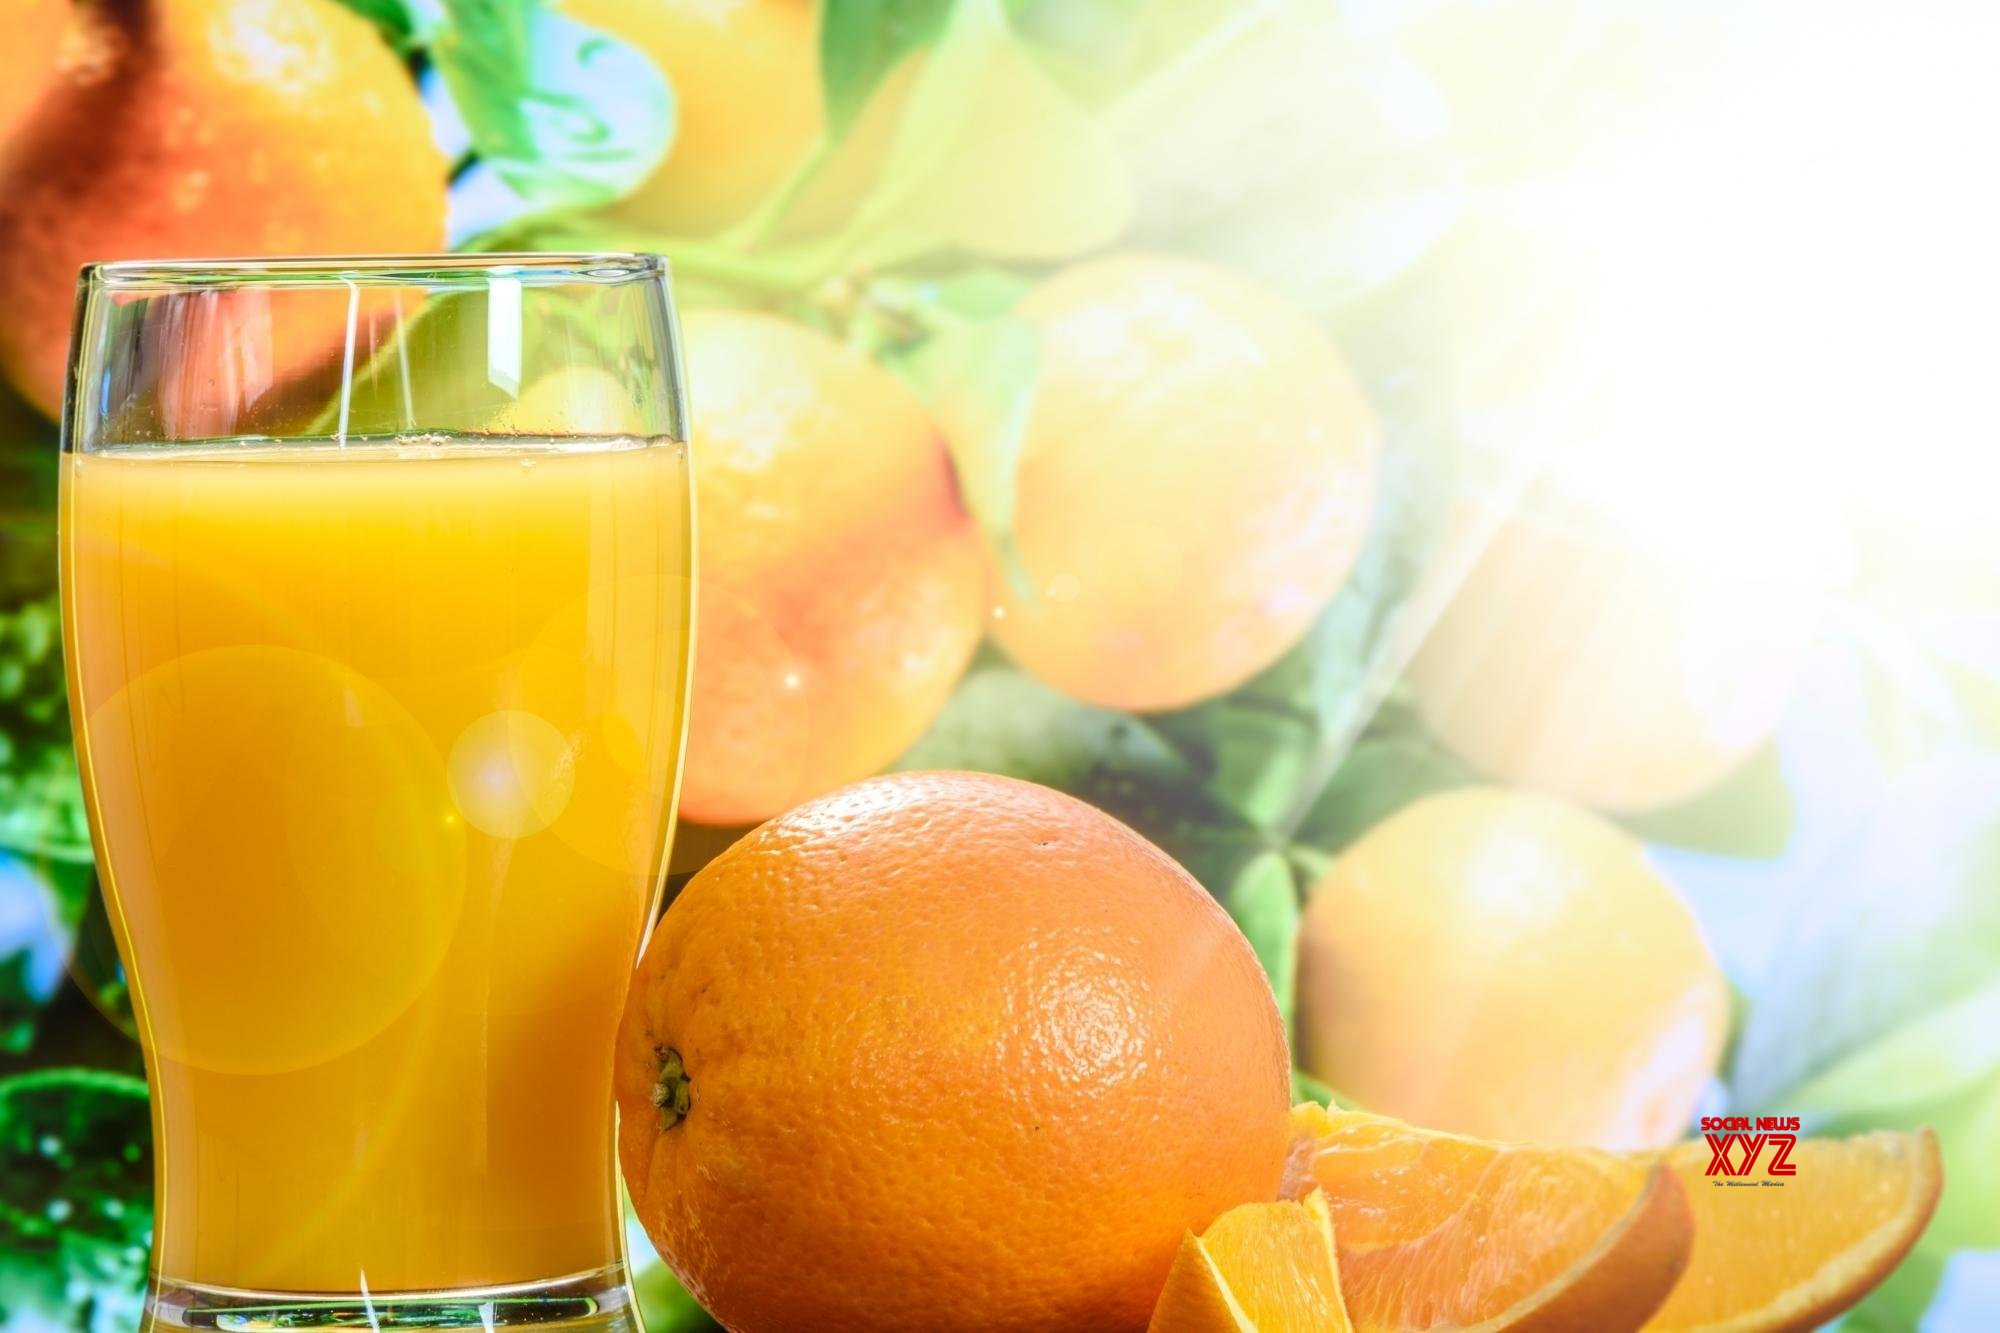 Tripura to distribute Vitamin-C enriched fruits to boost immunity